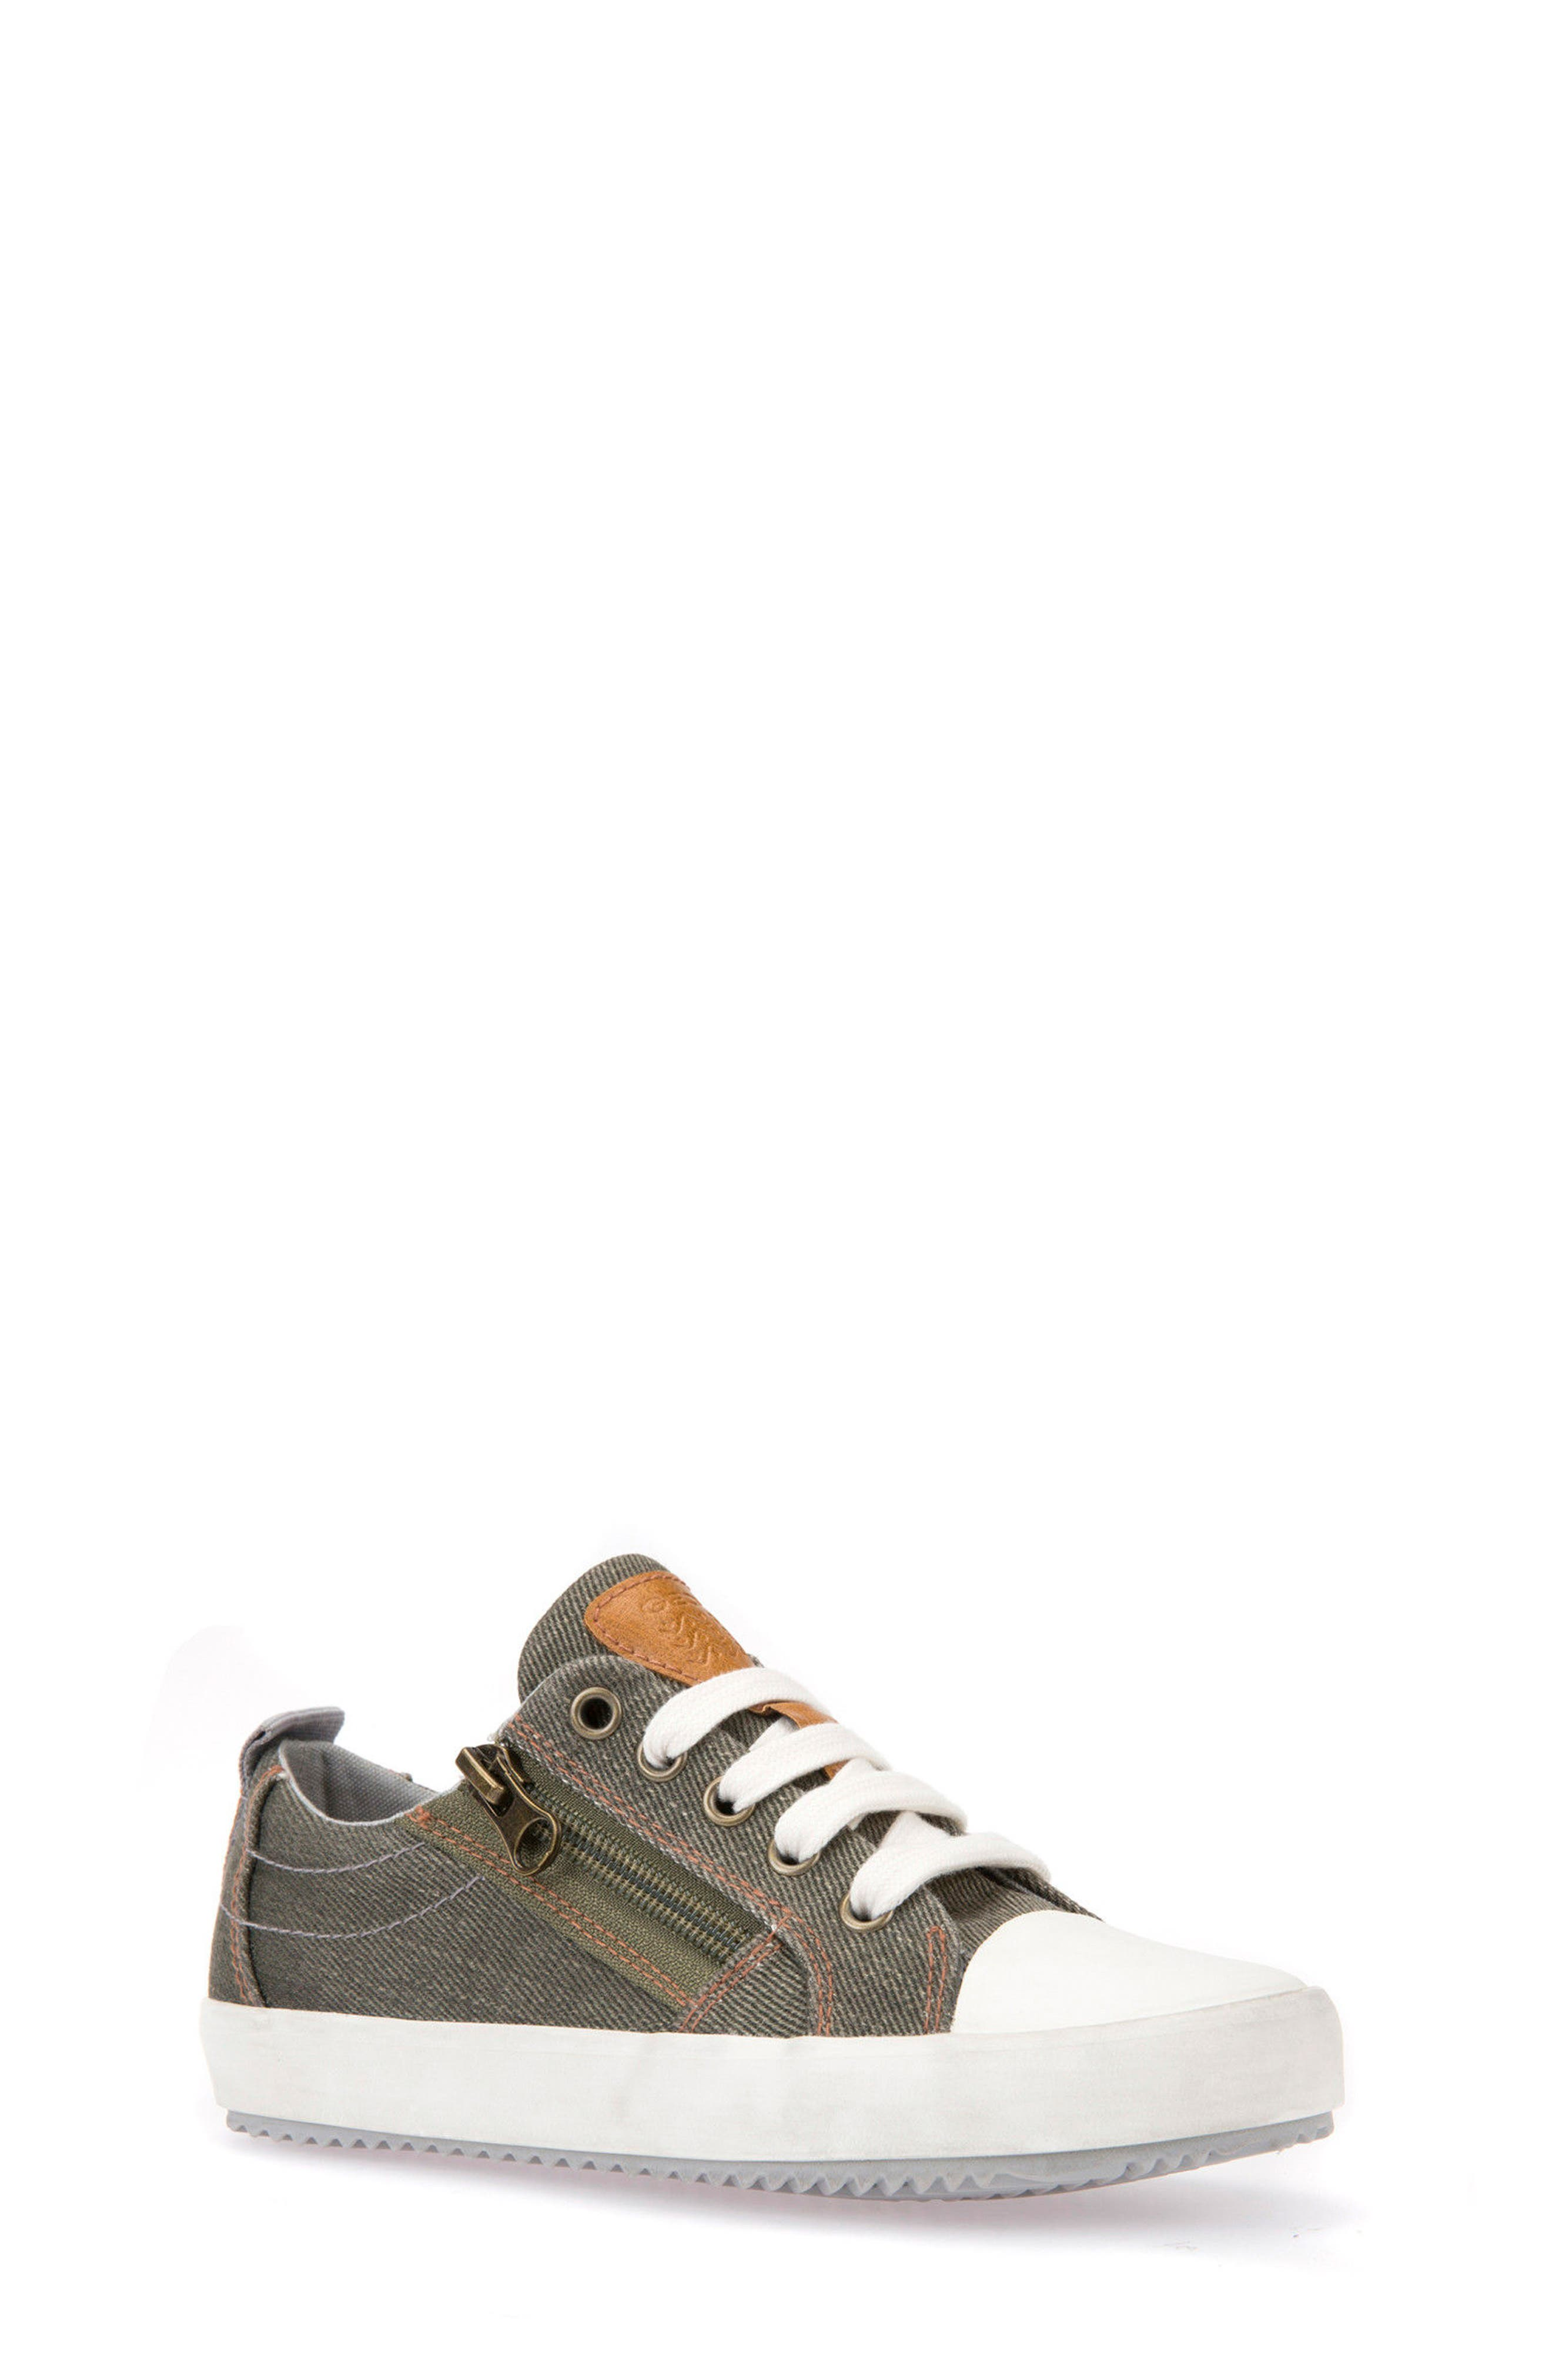 Alonisso Low Top Sneaker,                             Main thumbnail 1, color,                             MILITARY/ GREY